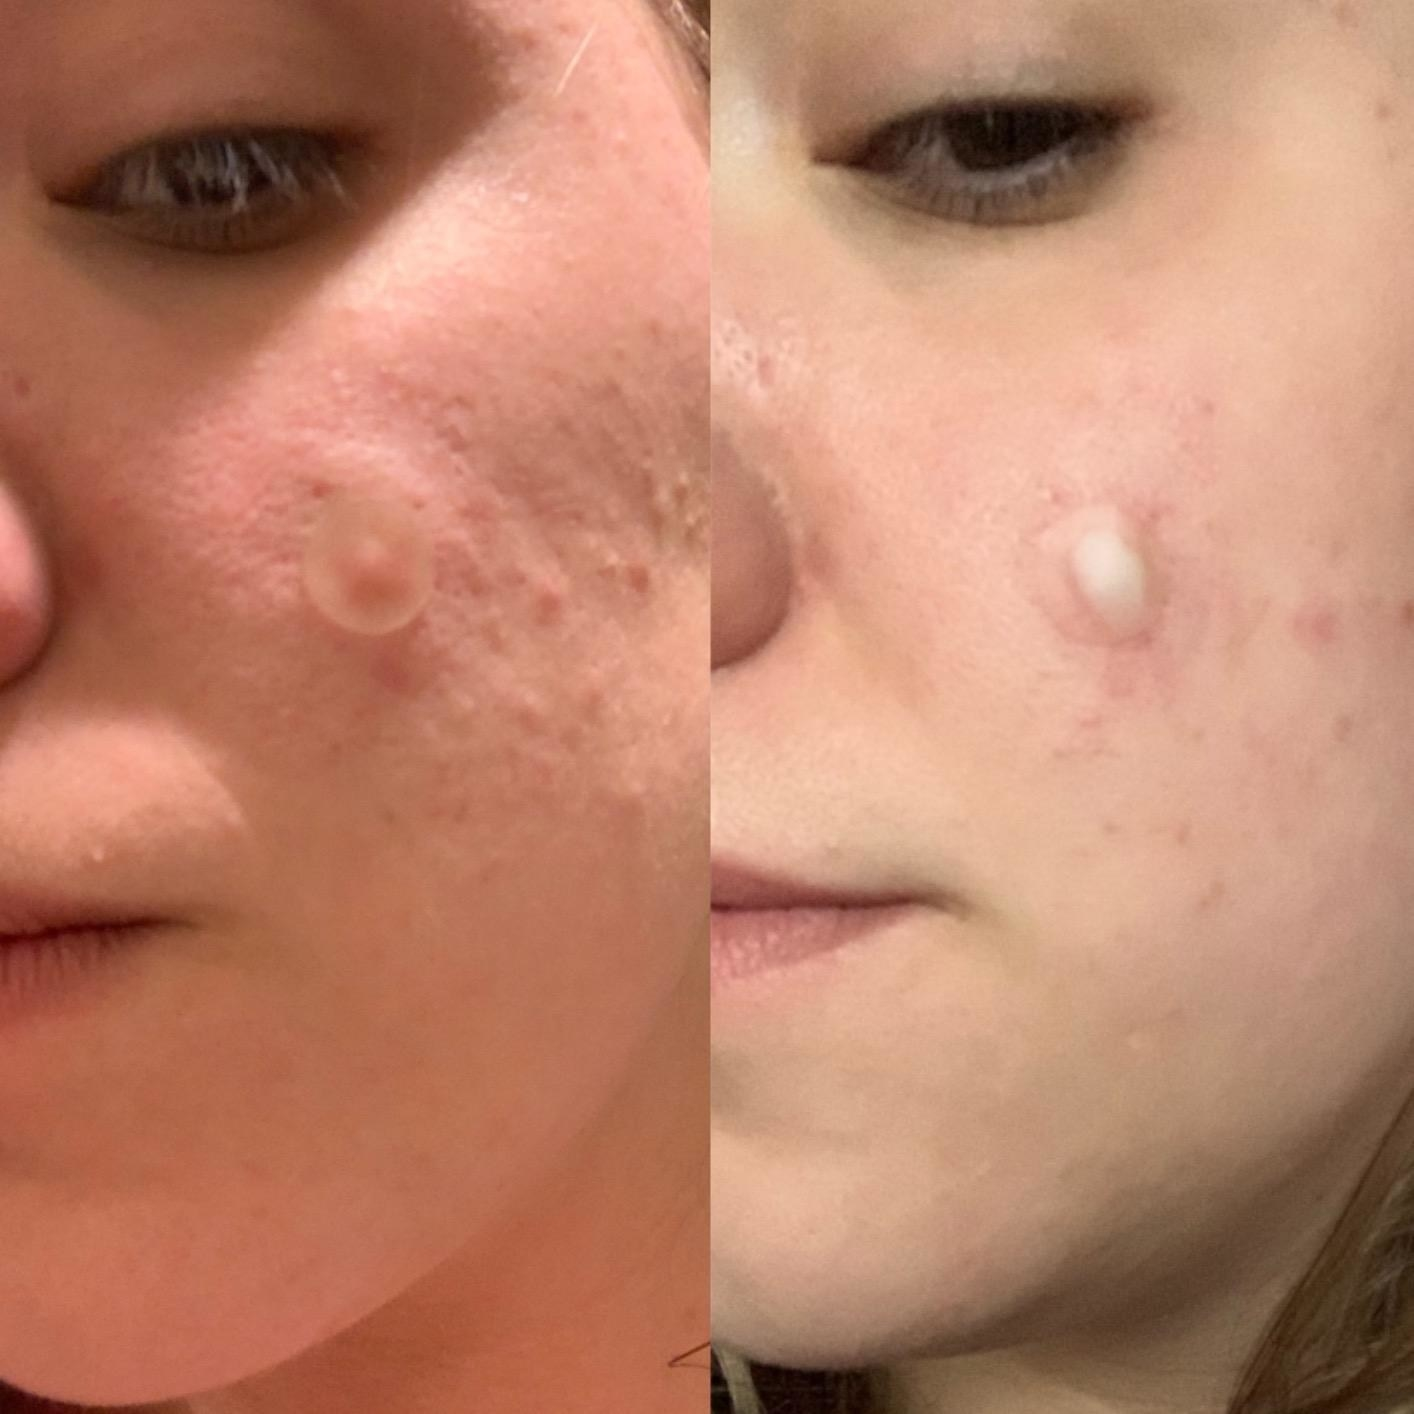 Reviewer before and after photo using patches